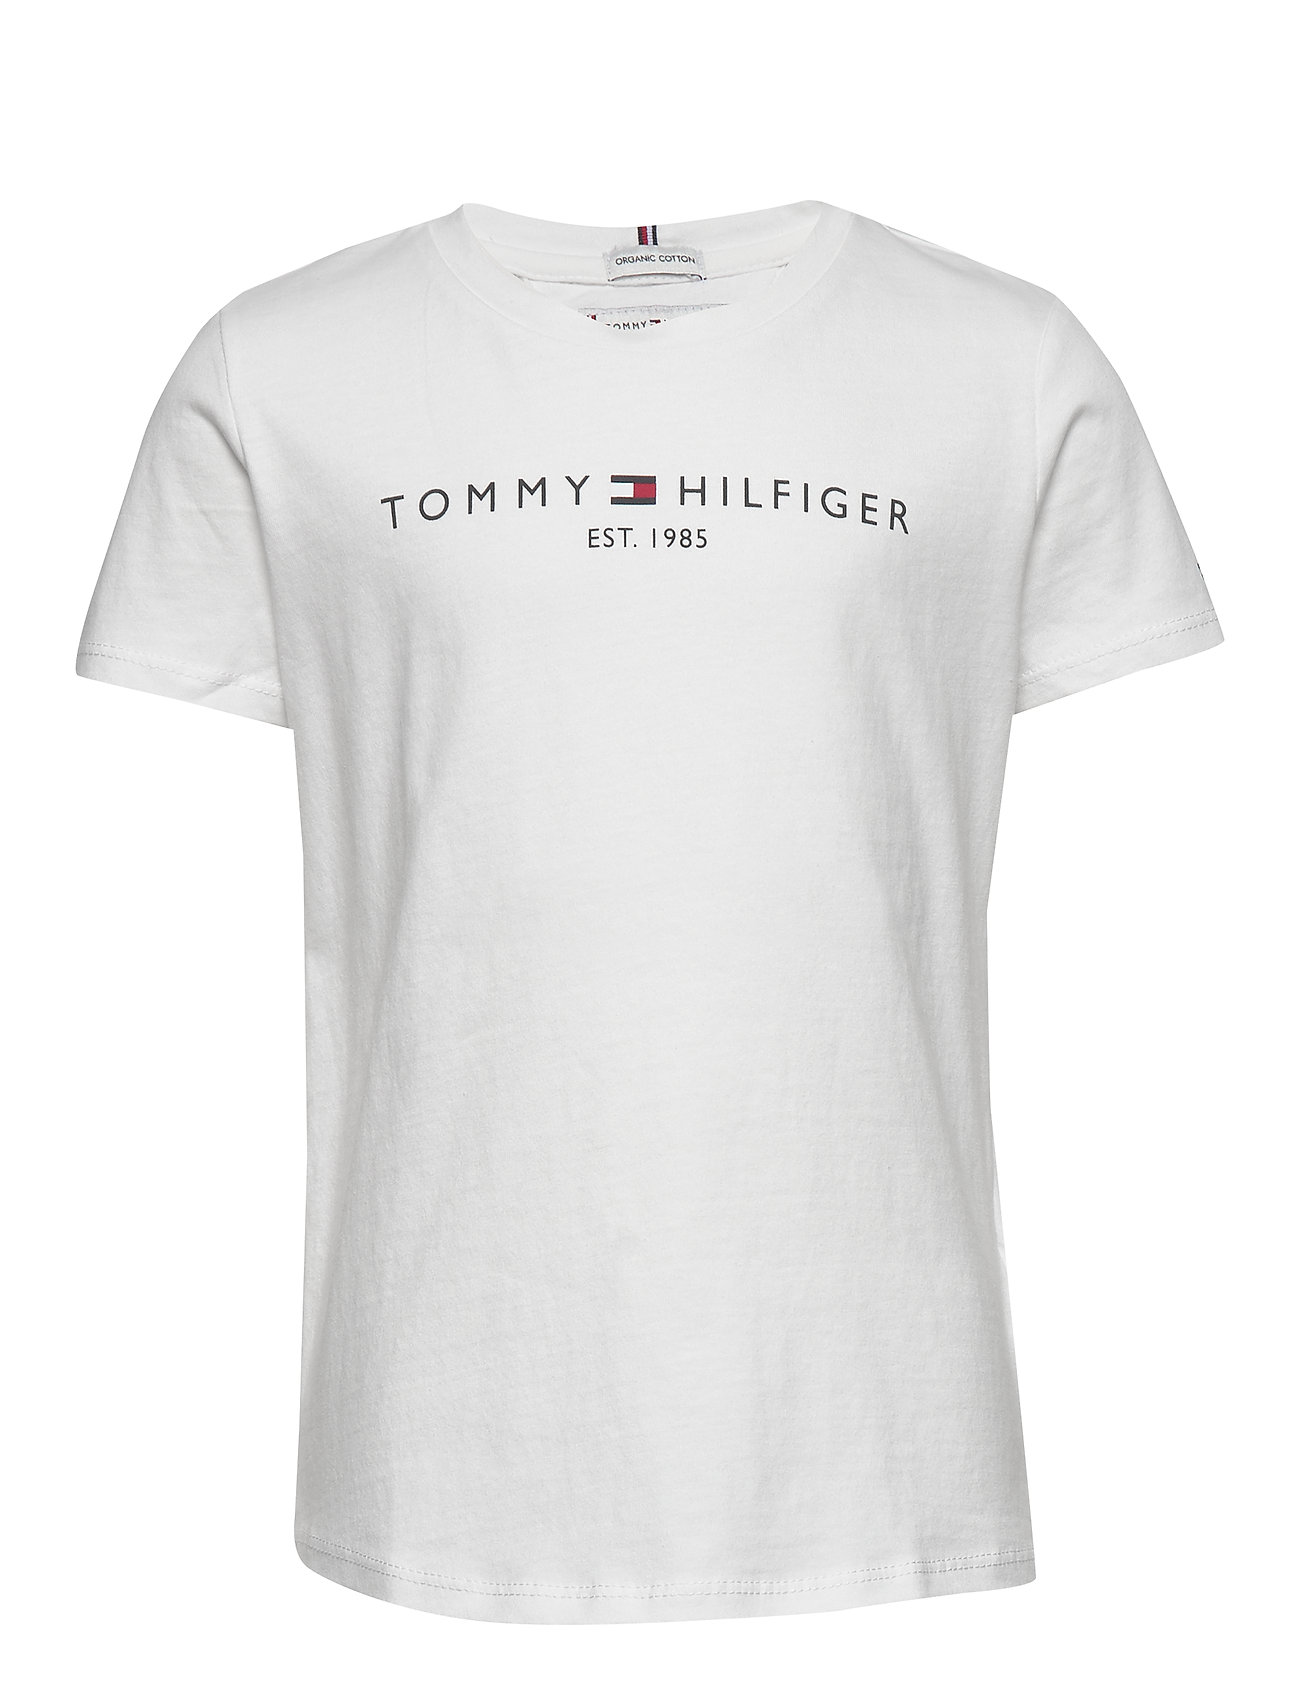 Tommy Hilfiger ESSENTIAL  TEE S/S - WHITE